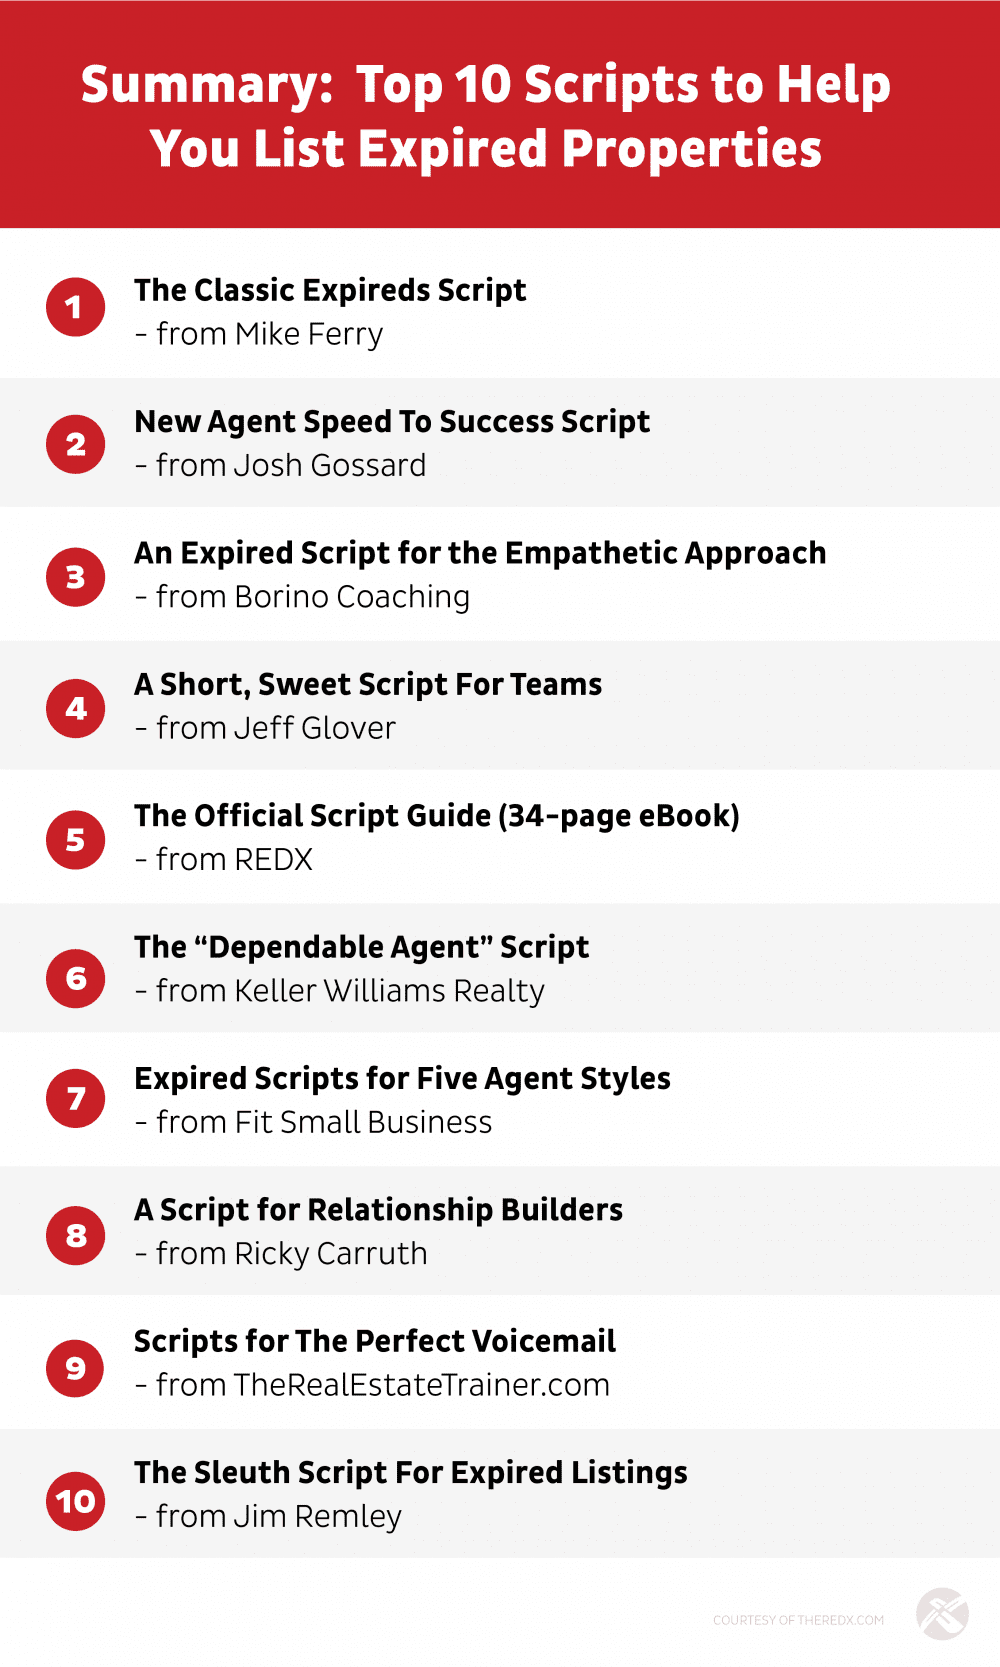 10 Golden Expired Scripts To List More Properties In 2019 - REDX